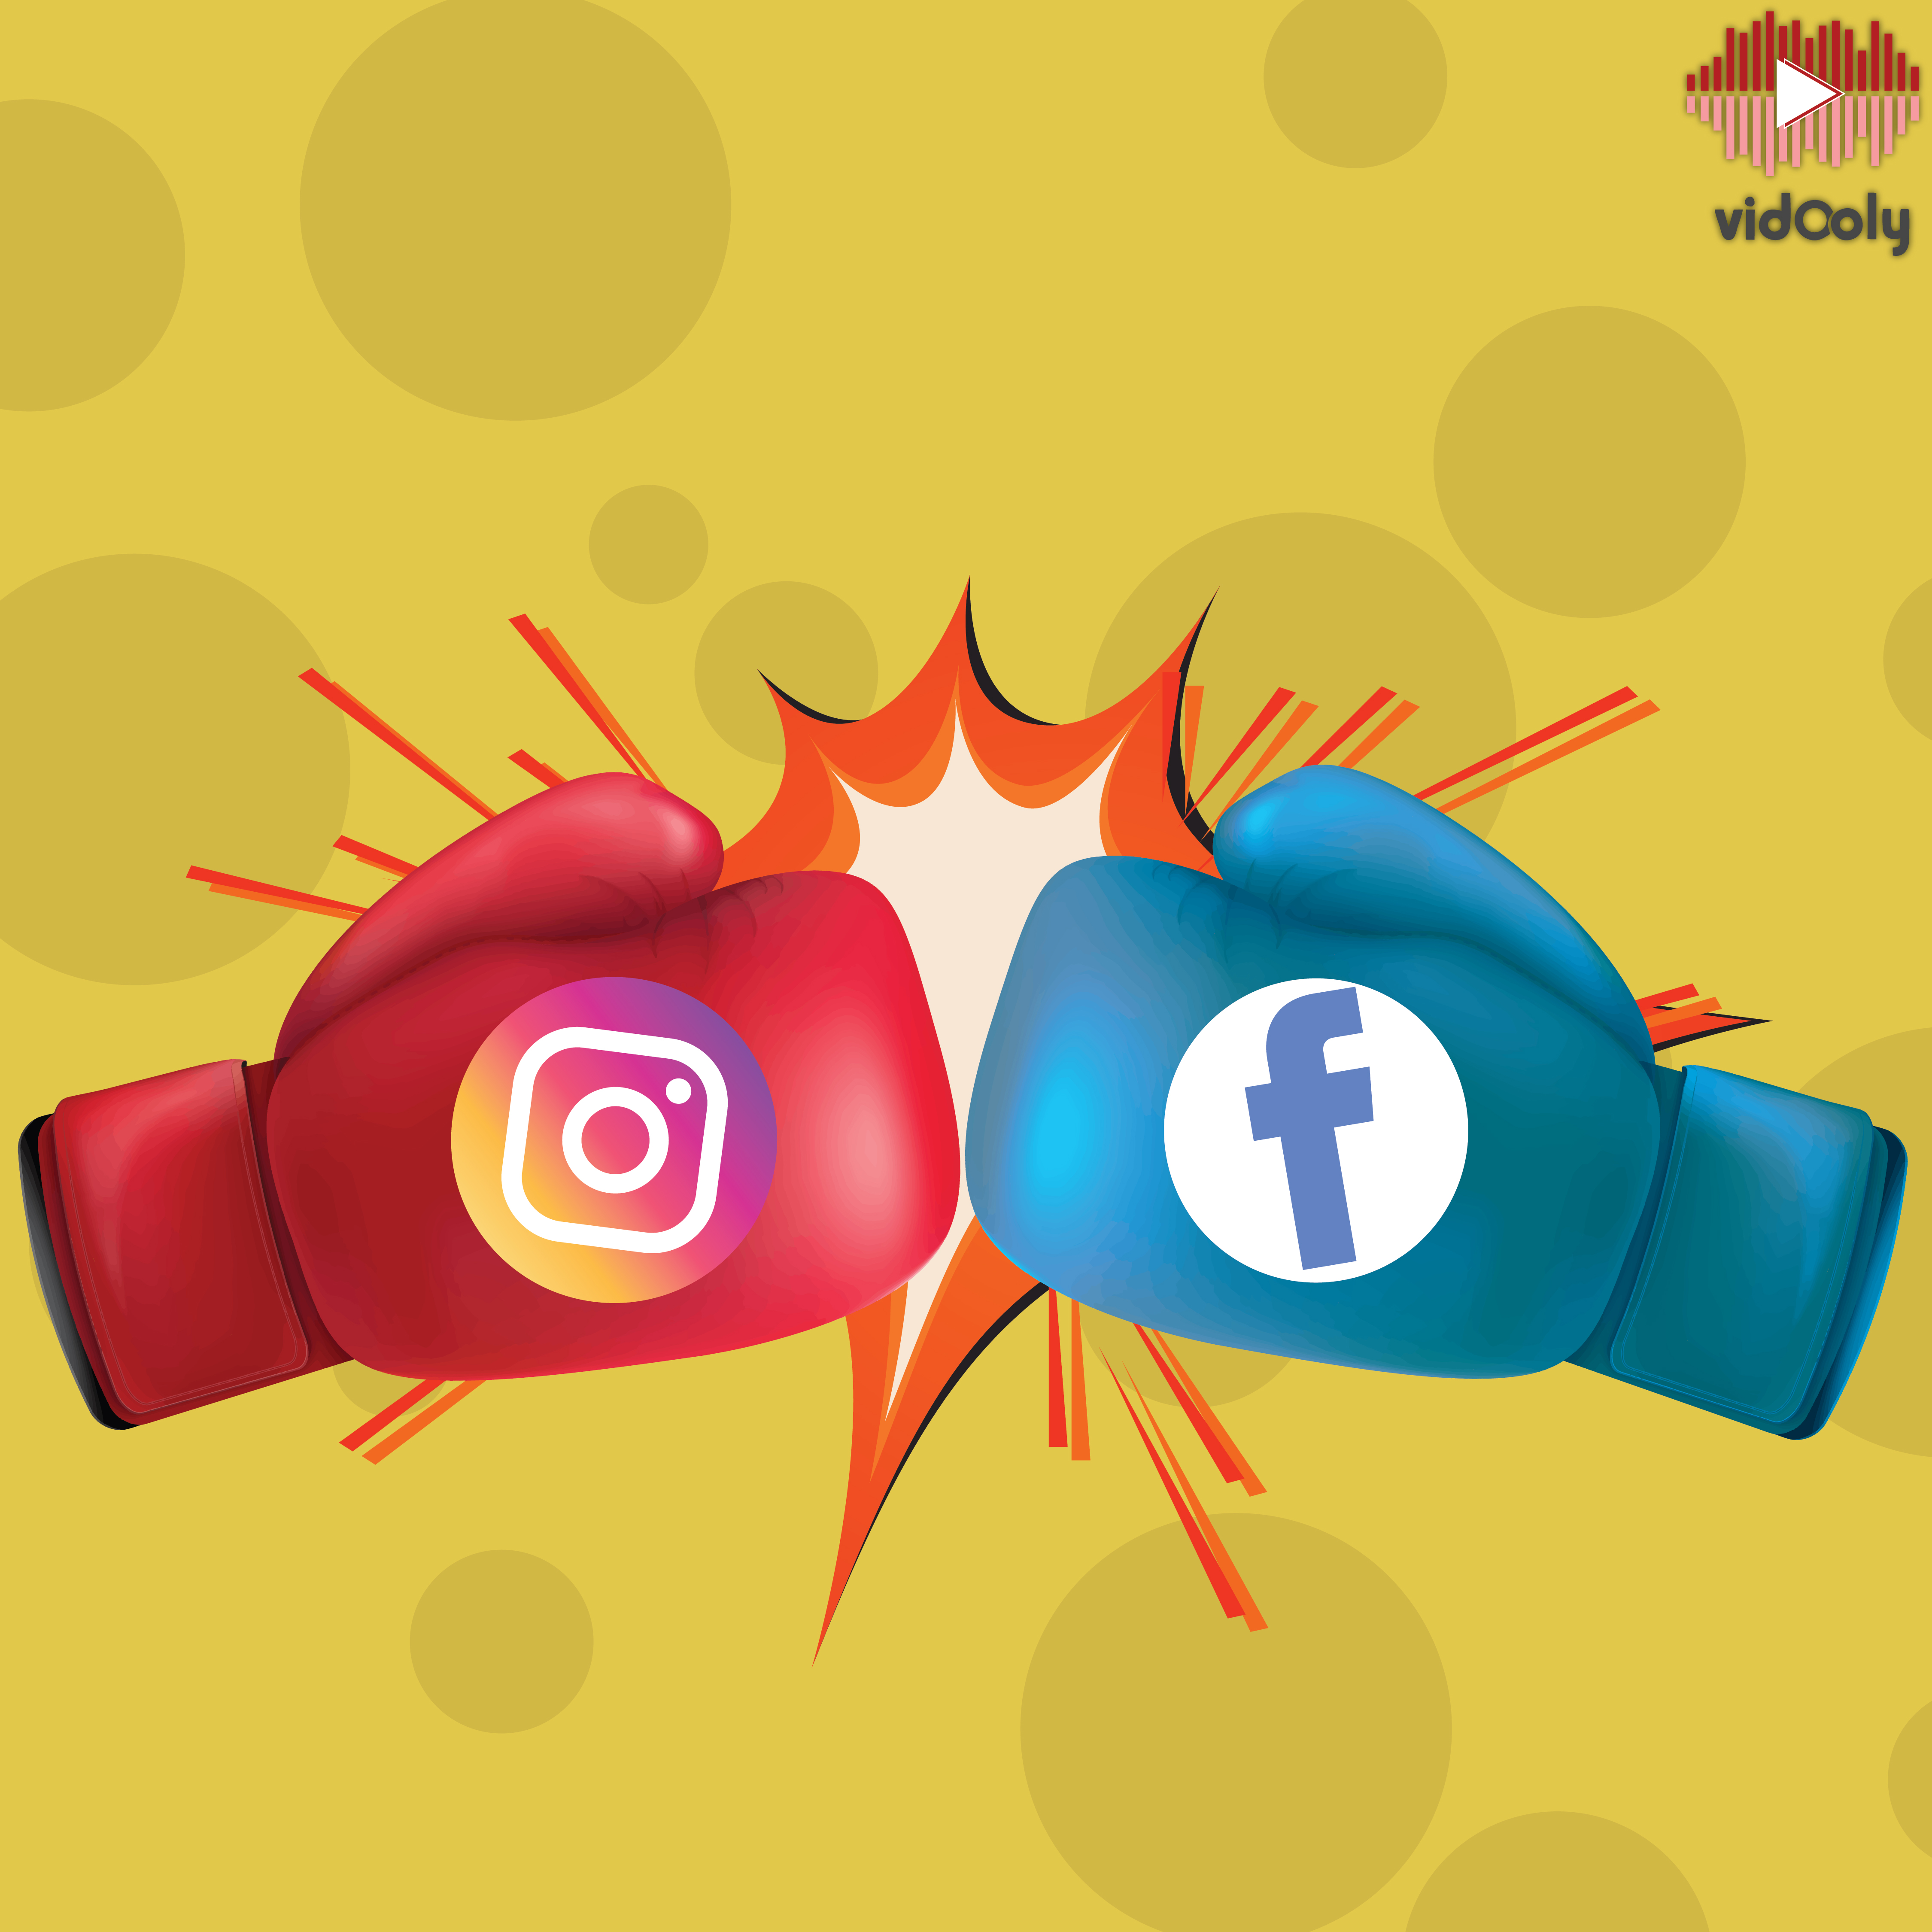 Facebook Marketing Vs Instagram Marketing: Which is a better